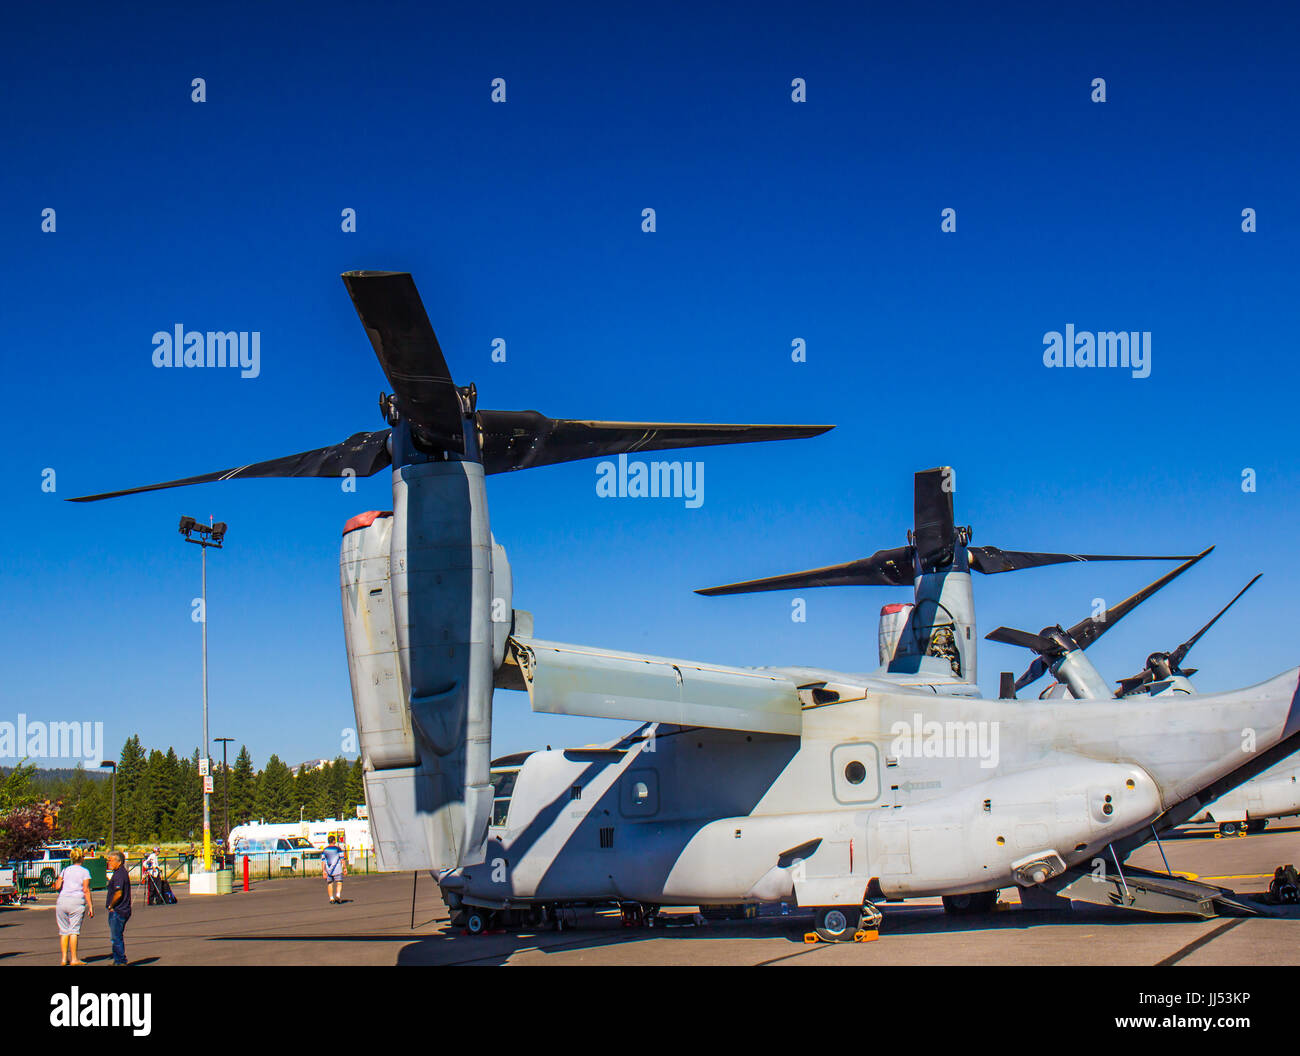 Large Tilted Propellers On Cargo Plane - Stock Image